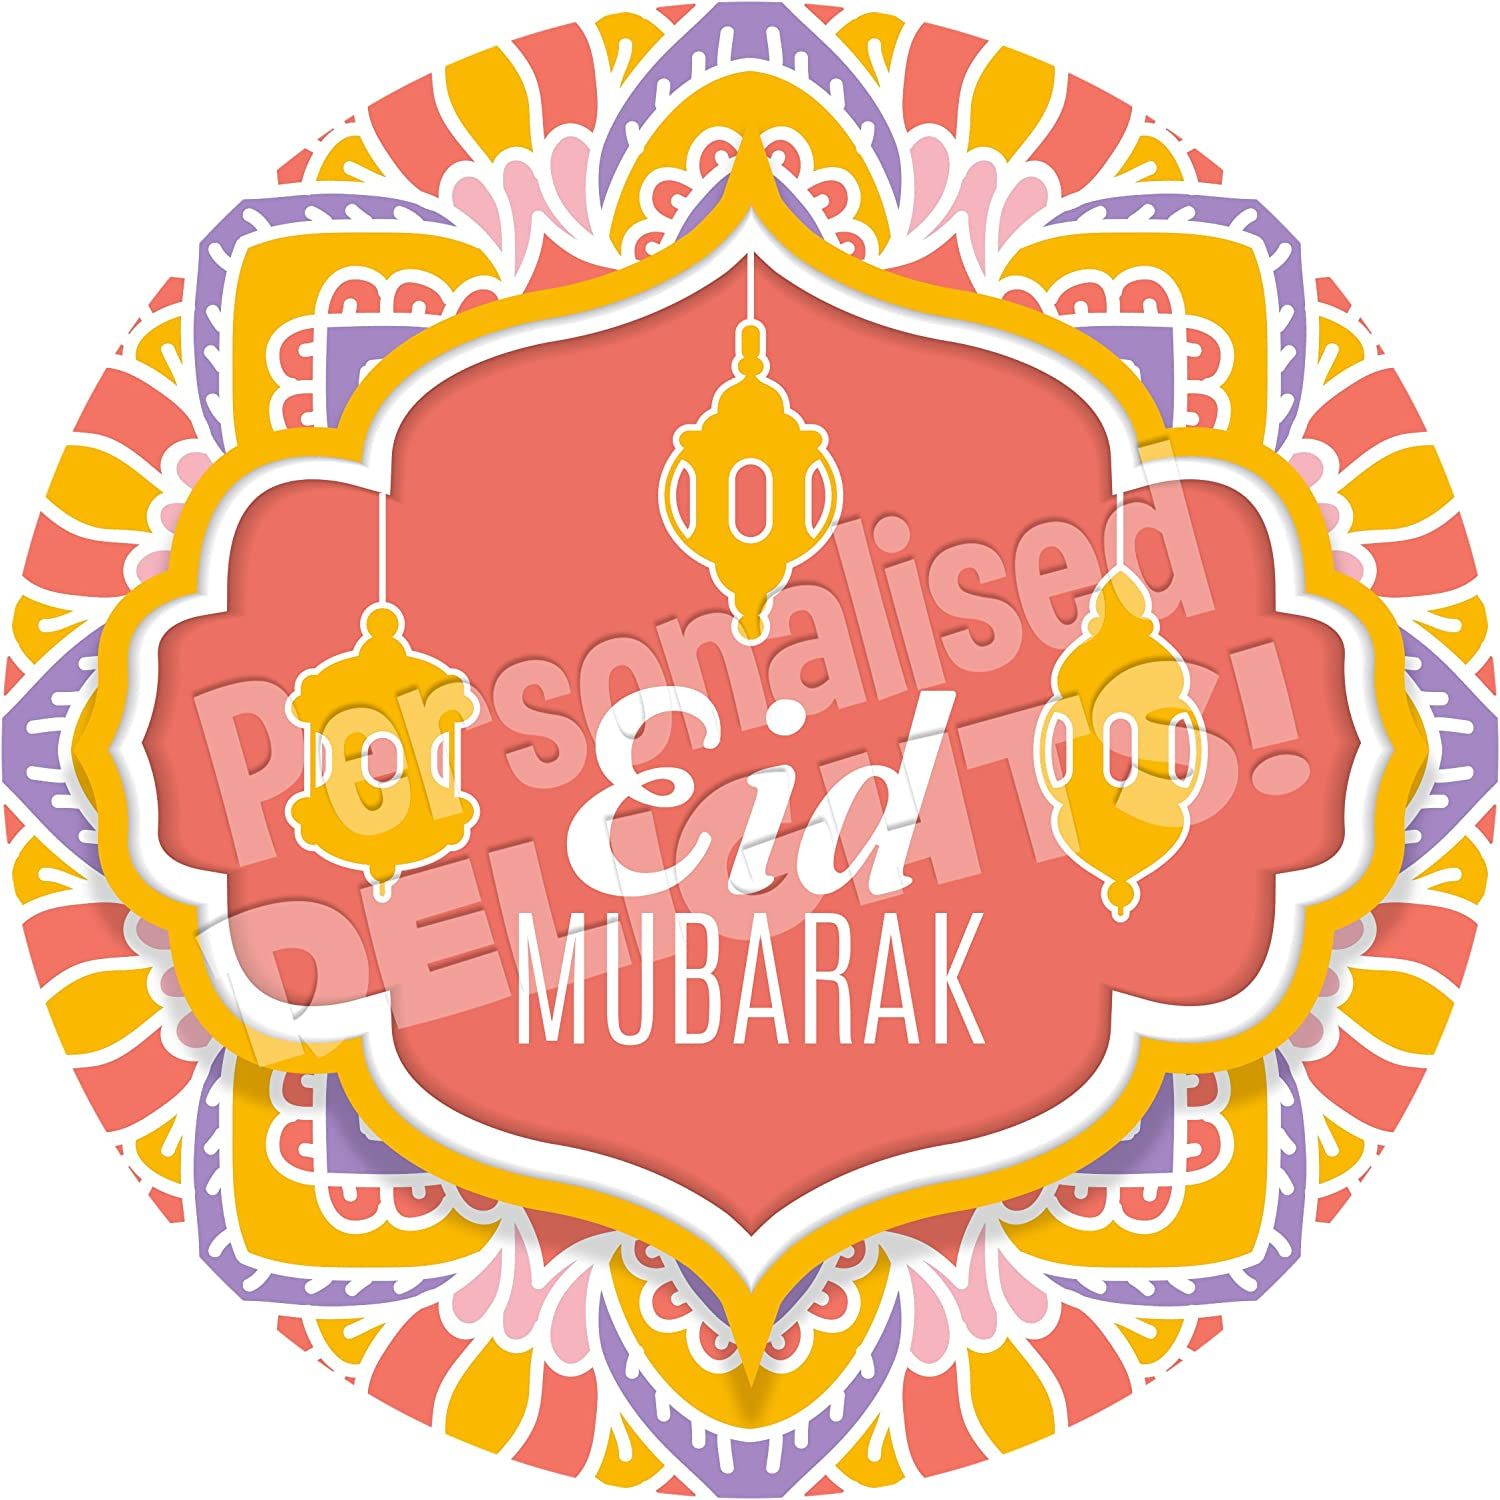 Crafts Jars Sweet Cones Presentations Gift Boxes NON PERSONALISED Seals Ideal for Party Bags Favours Eid Mubarak Mandala Ornament Sticker Labels Bottles 6 Stickers, 9.5cm Each